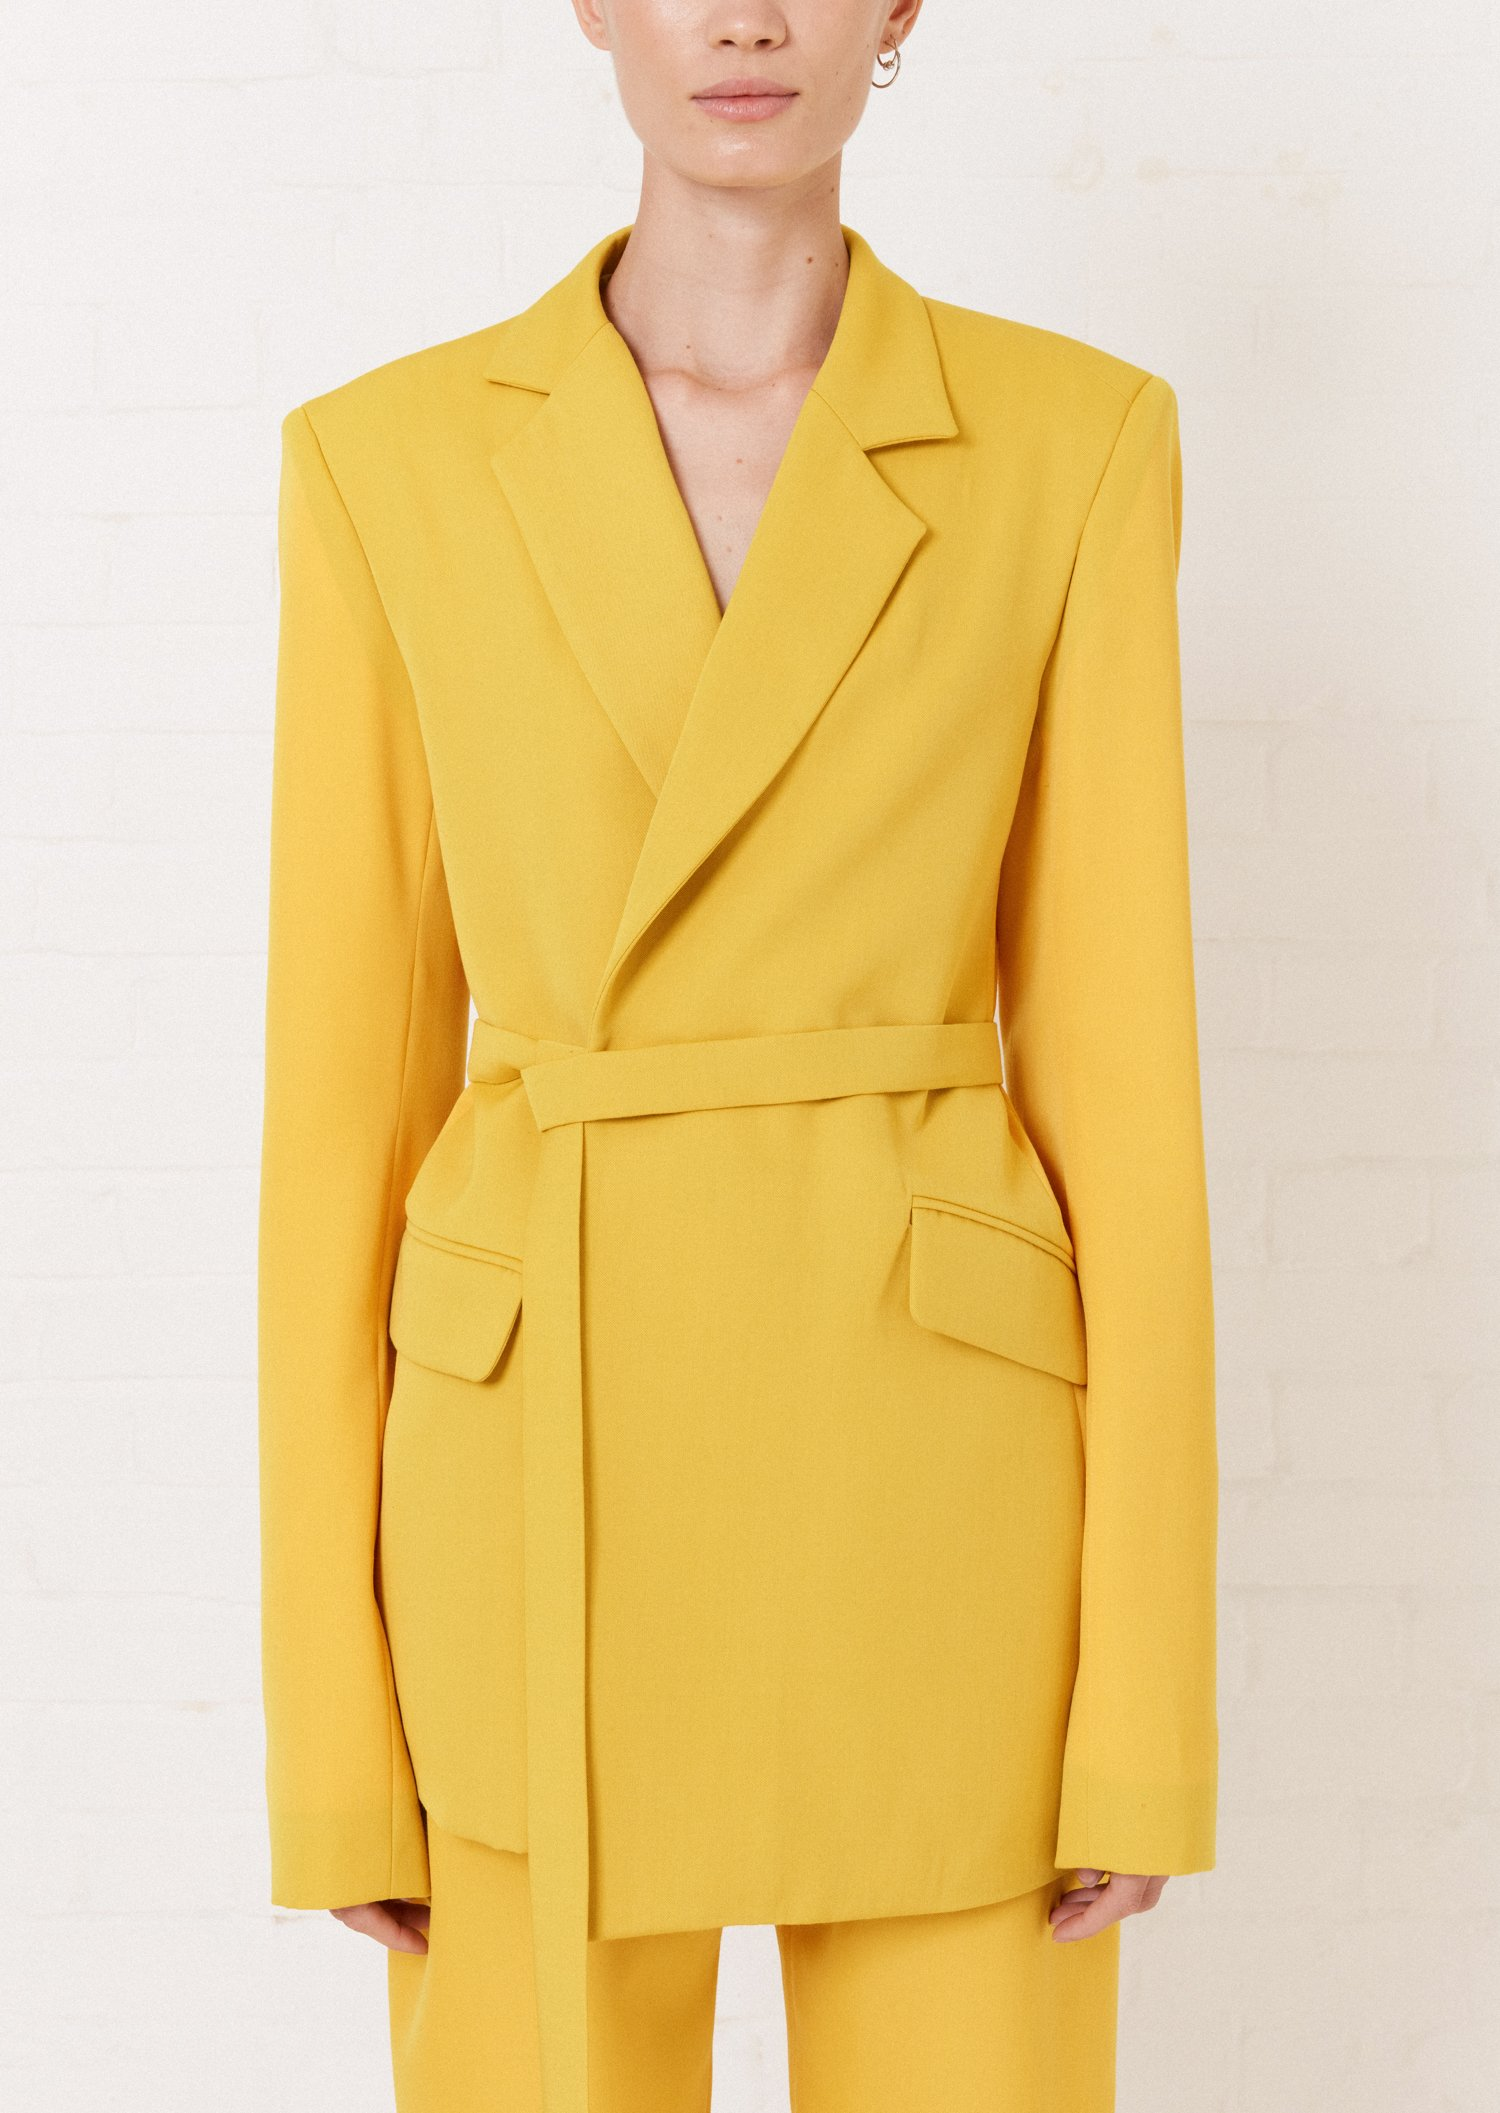 Yellow Tailored Suit Jacket   House of Holland – House of Holland